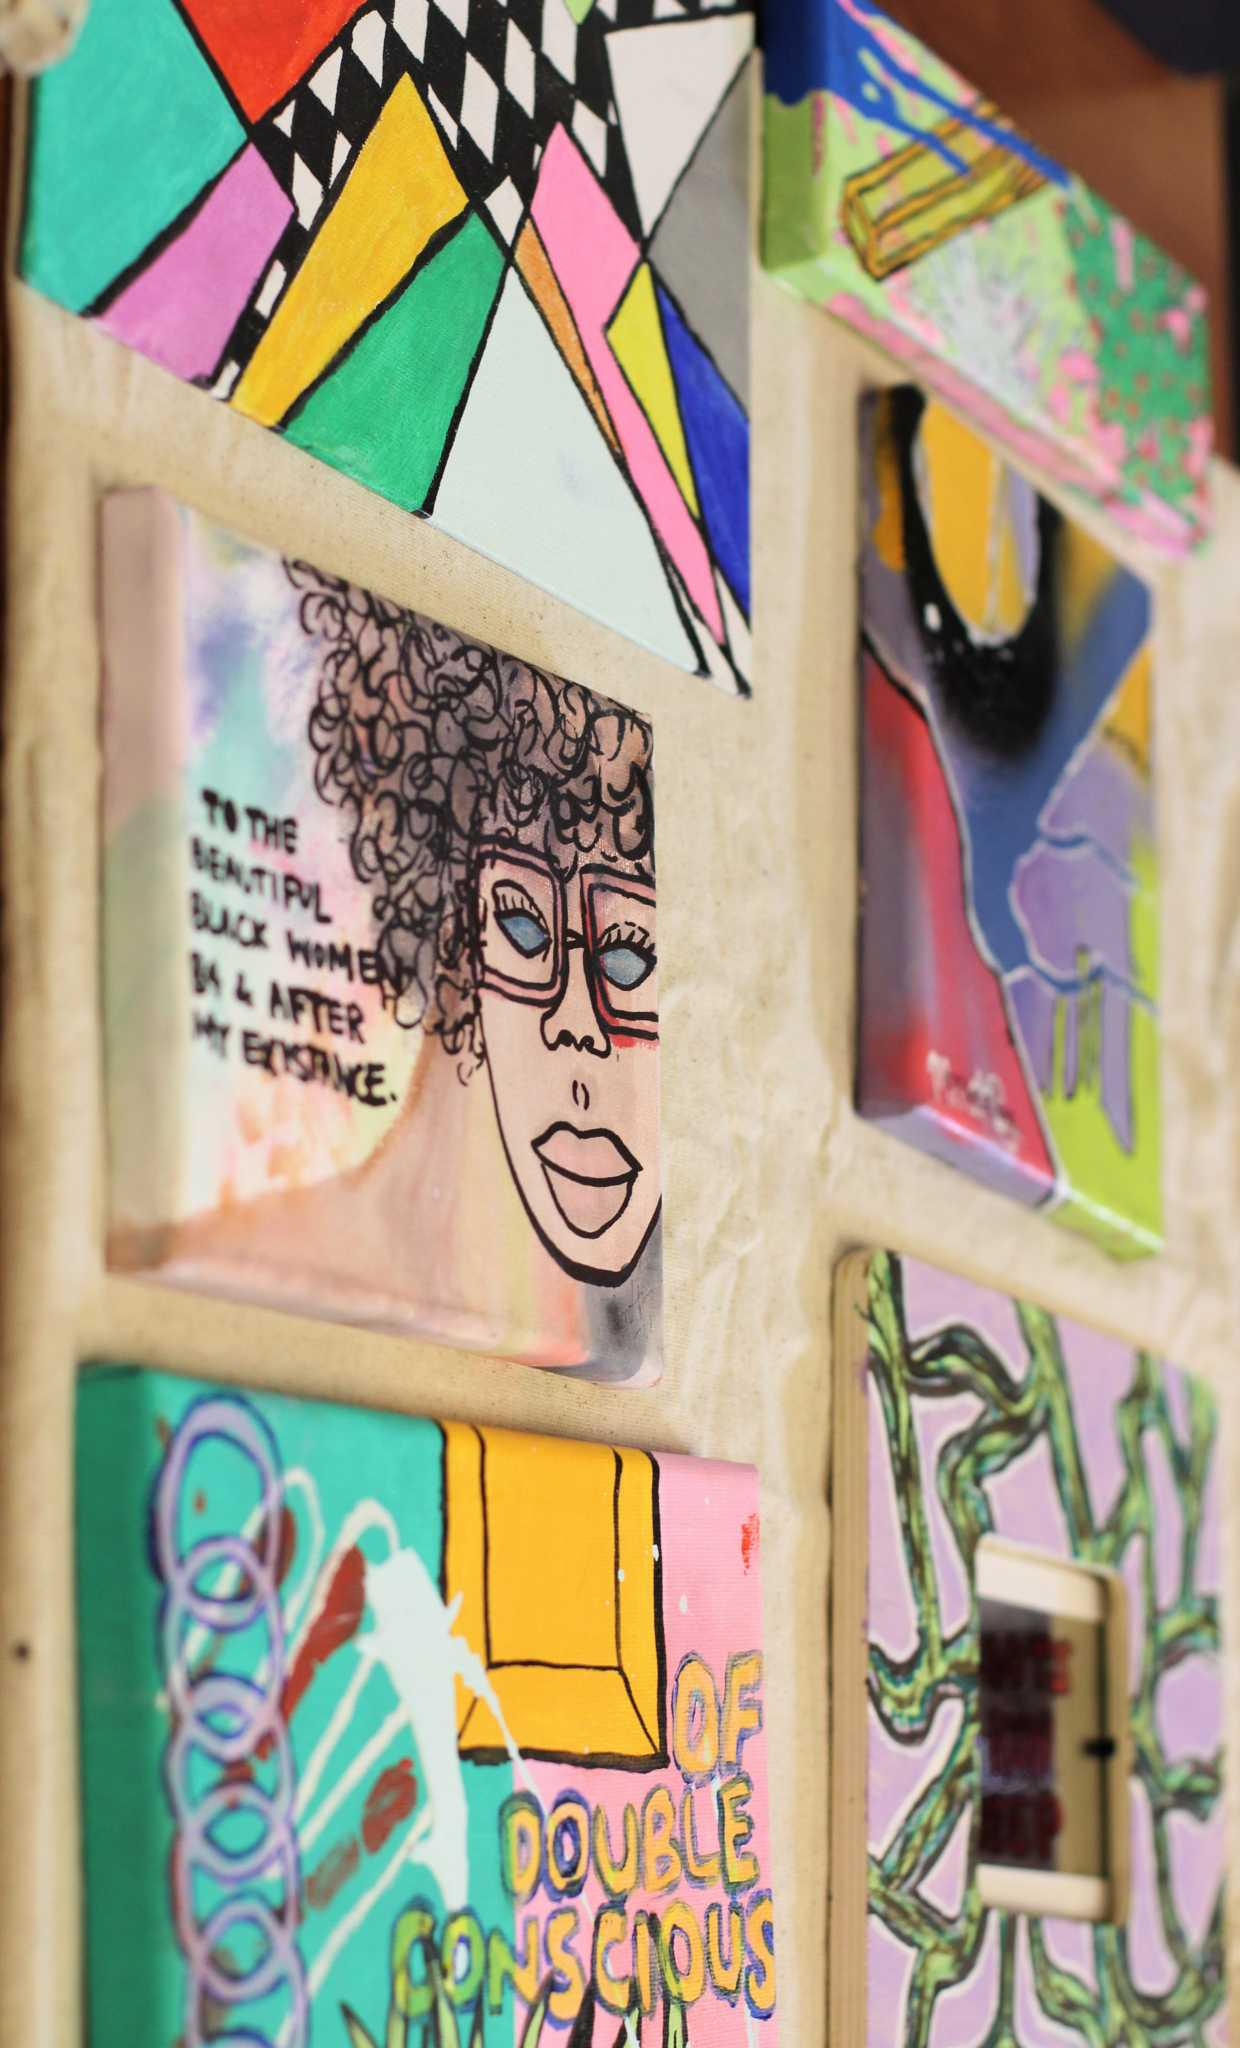 The Ethnic Studiers department holds a student art show in the ethnic studies building at SF State on April 26, 2017 in San Francisco, Calif. (Alina Castillo/Xpress)